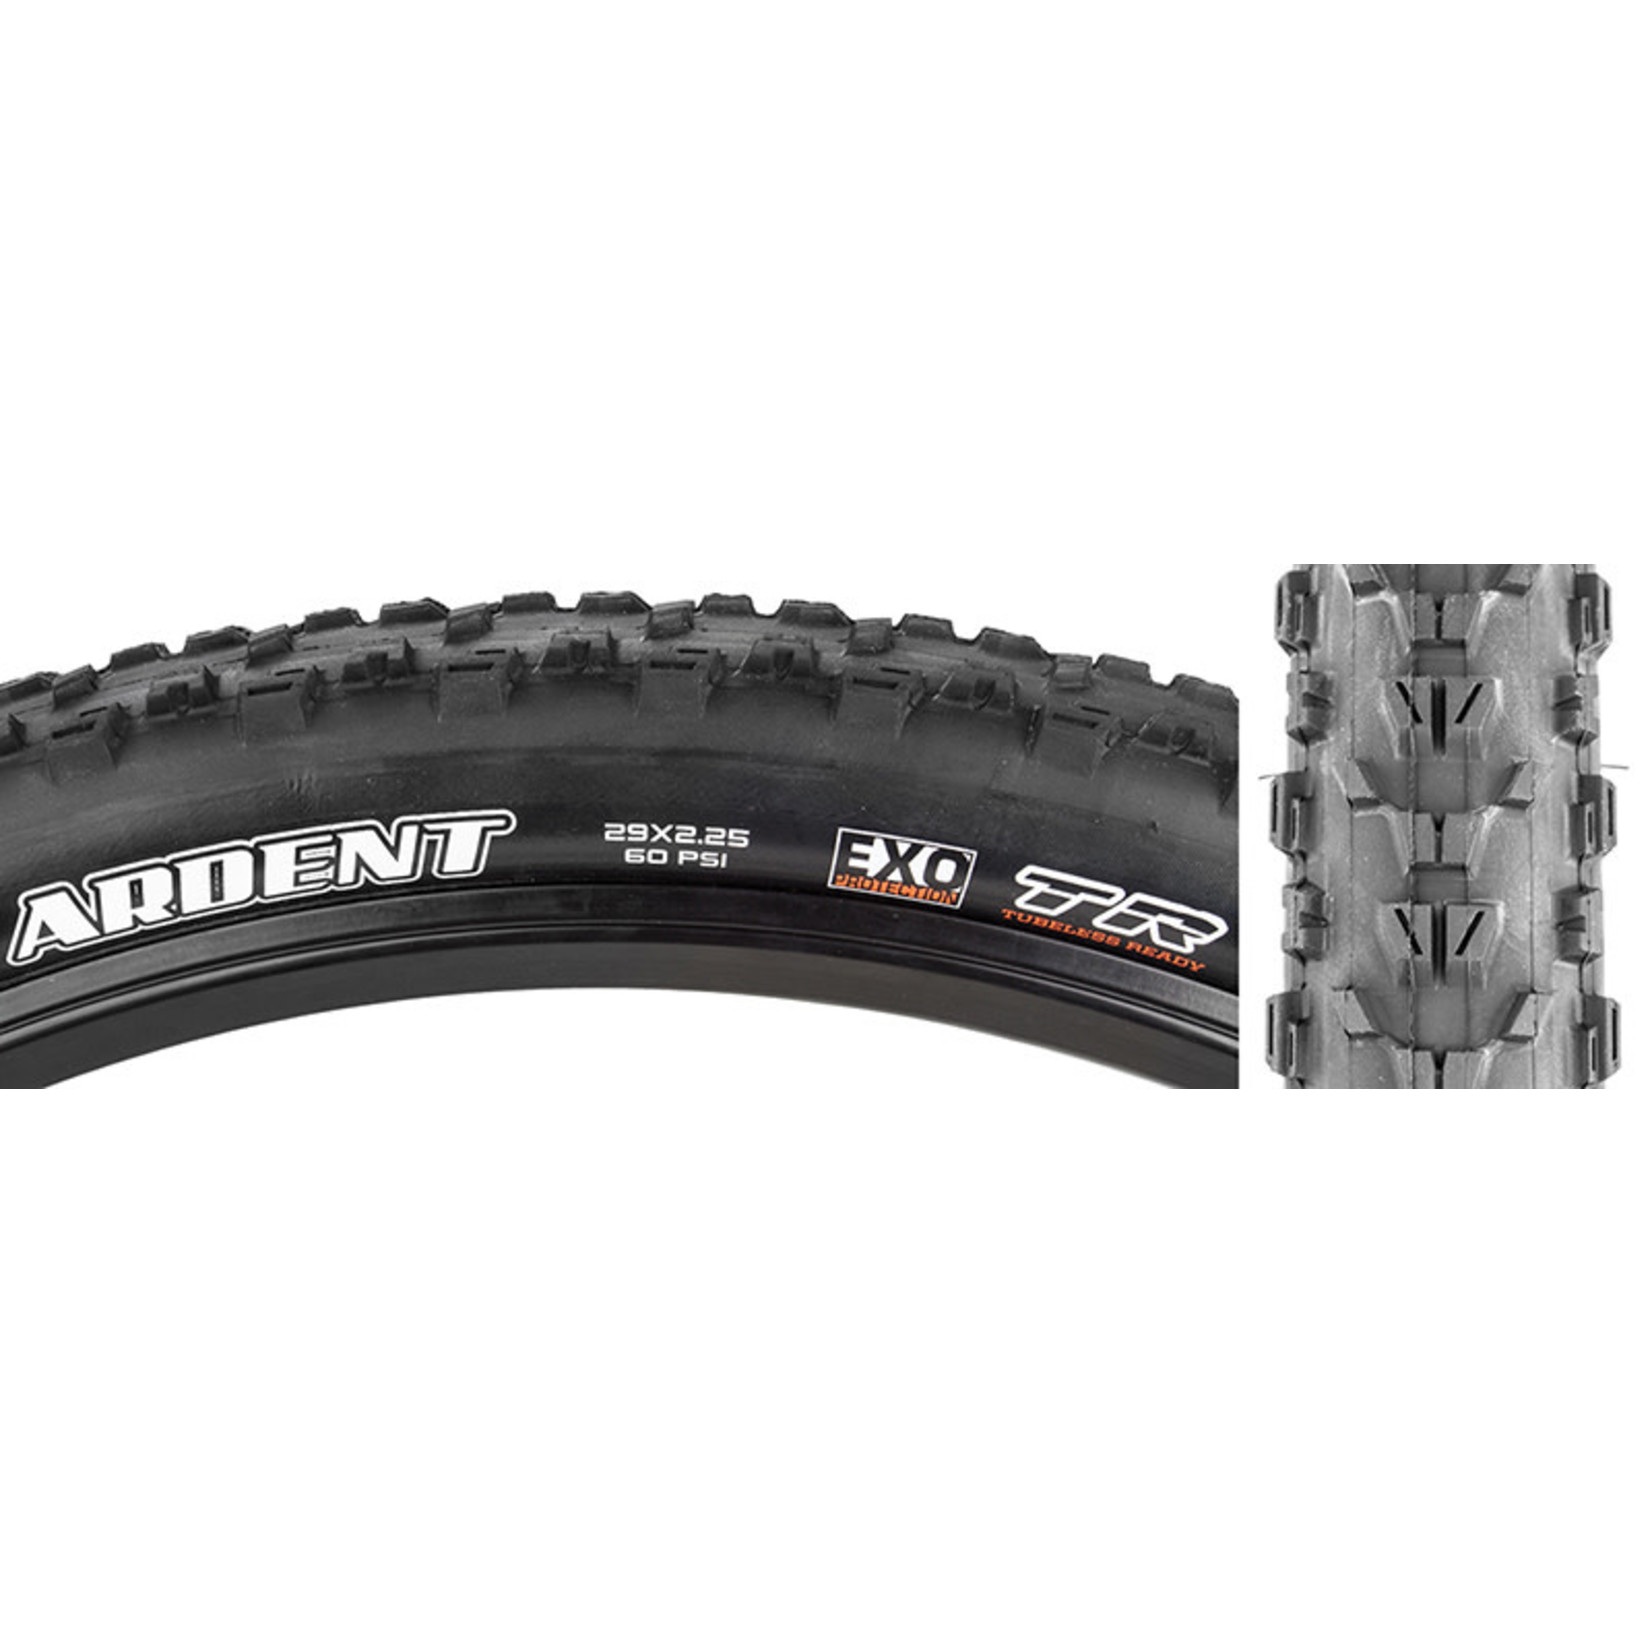 Maxxis Maxxis Ardent Tire - 29 x 2.25 - Dual Compound EXO